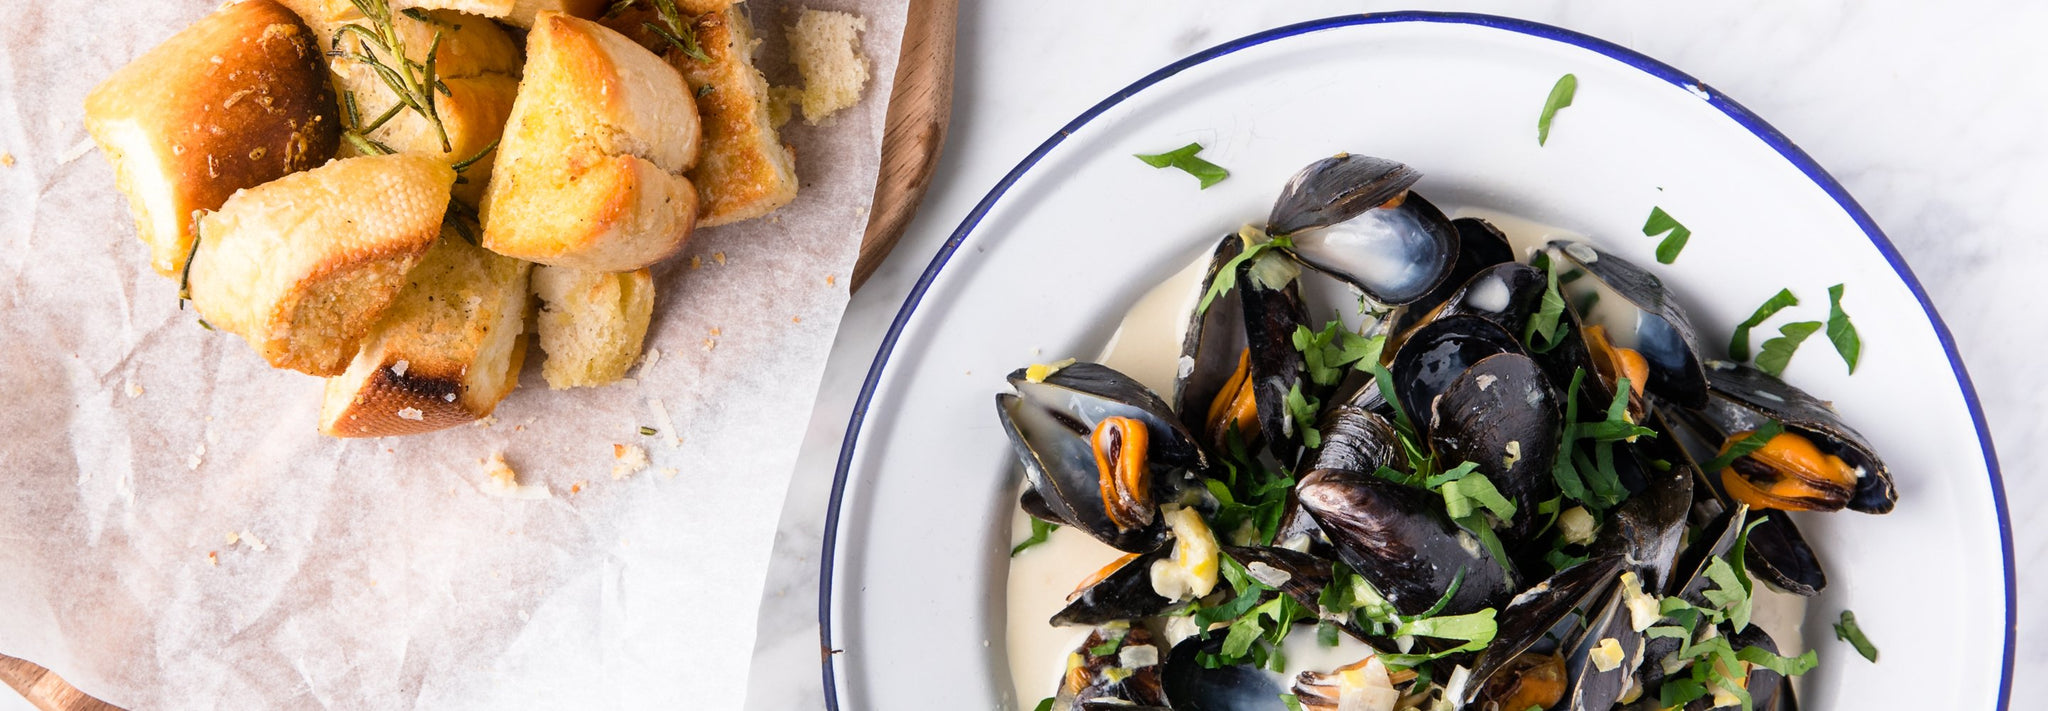 Wood Fired Mussels with Parmesan Bread Bites